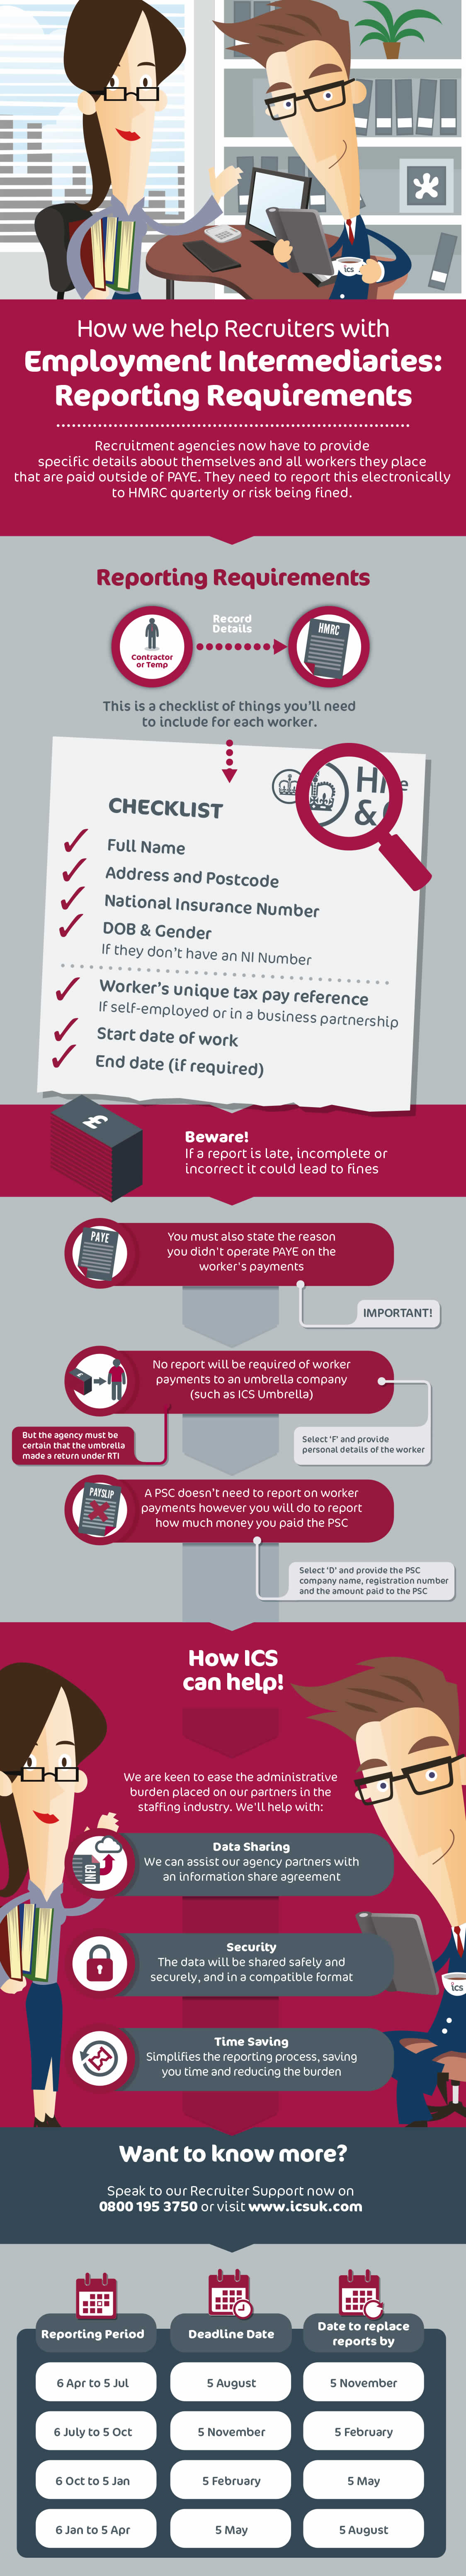 Infographic for Onshore Intermediary Legislation by ICS